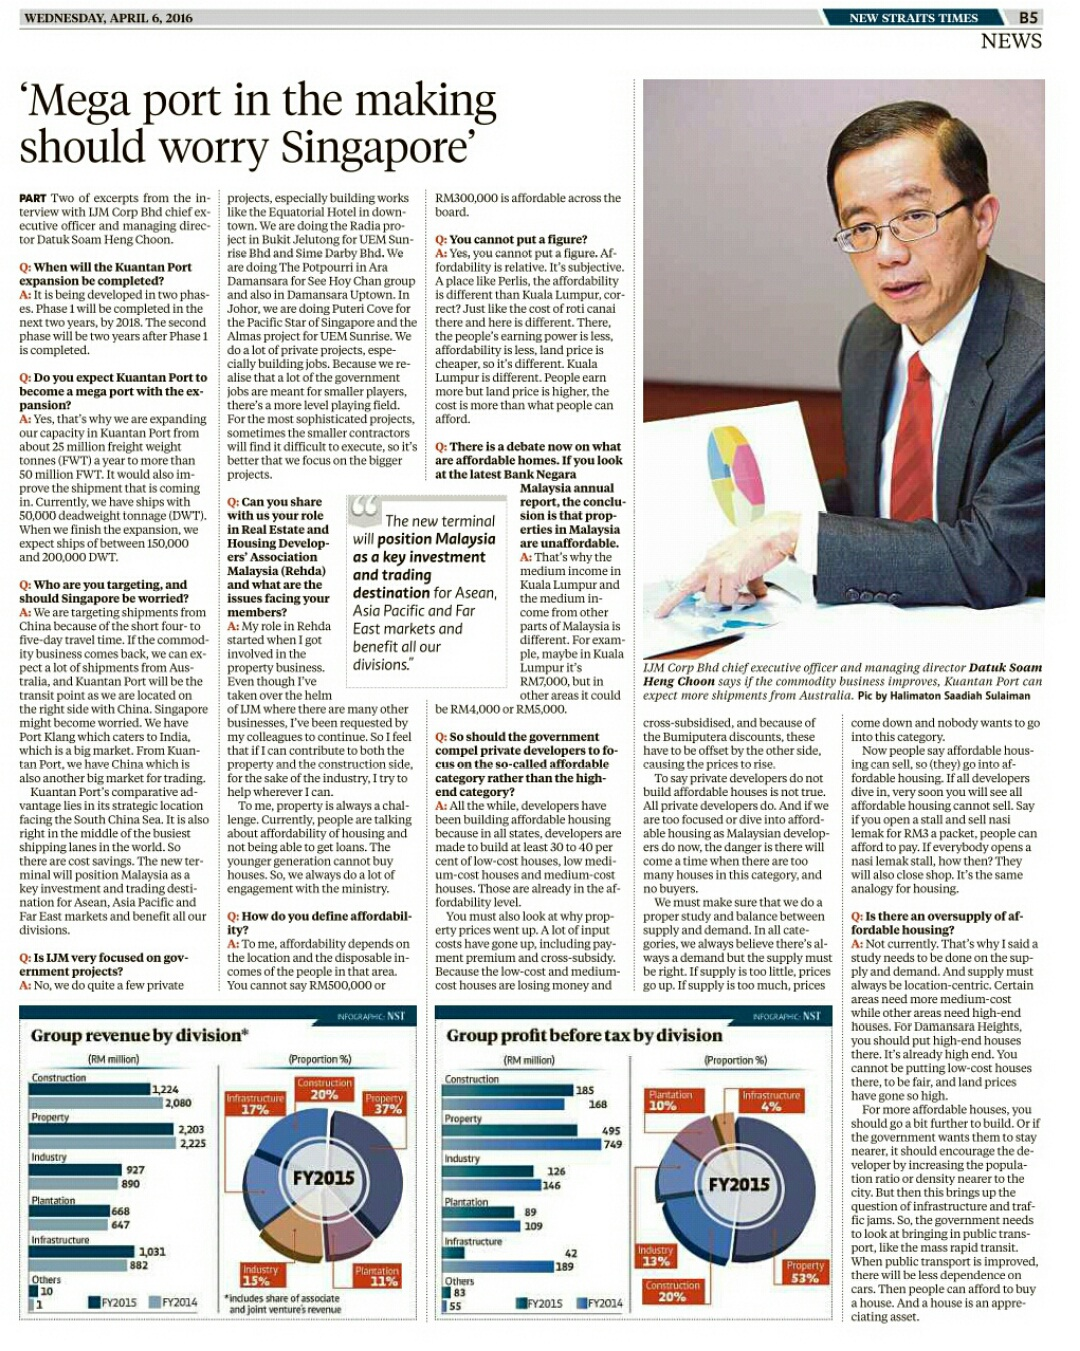 Mega port in the making should worry Singapore